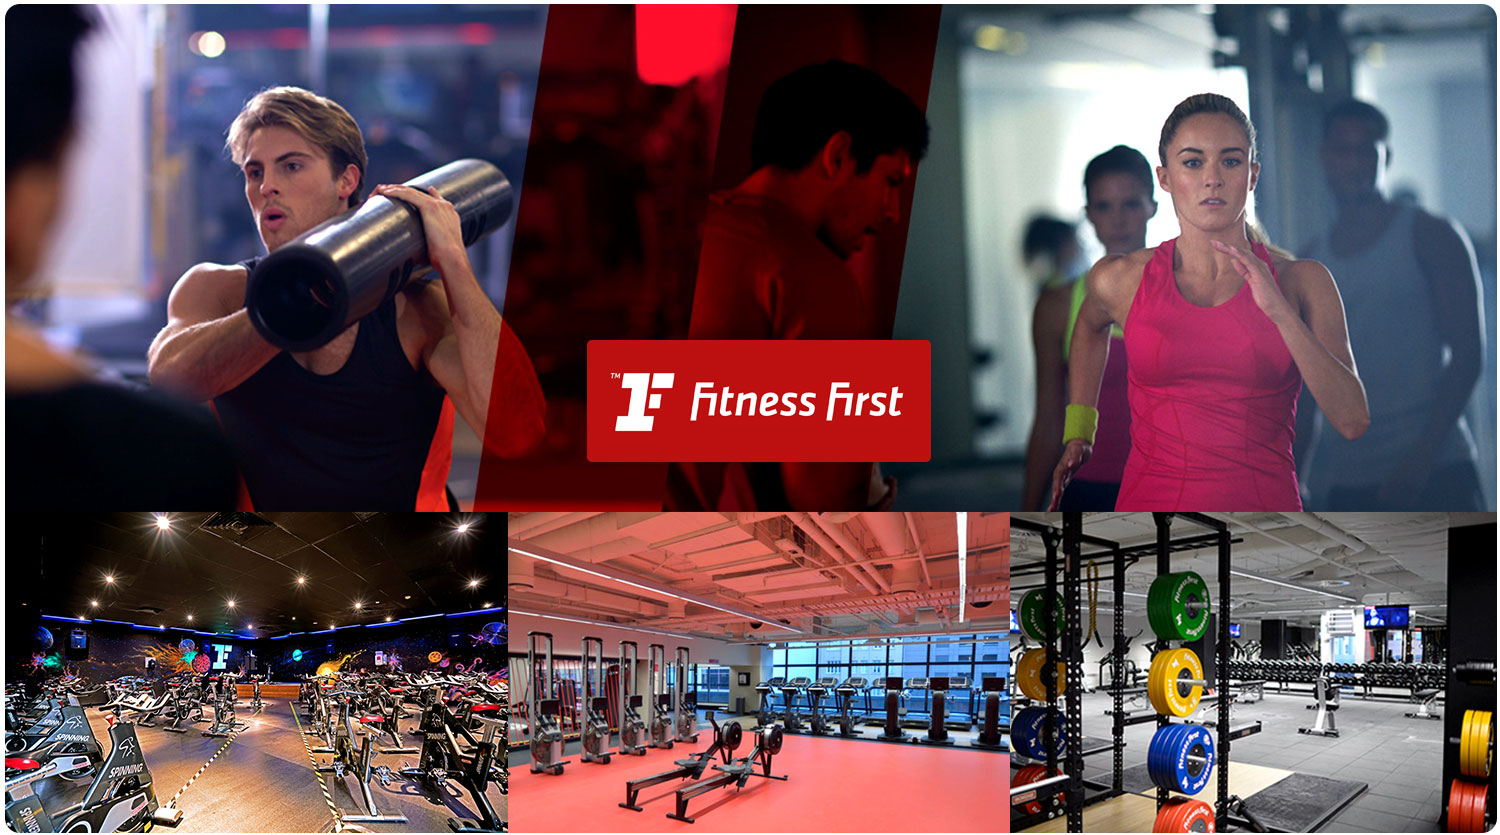 Start your Fitness Journey with Fitness First with only $14.95 for 14 days at Fitness First Erina NSW. Experience our first class gym and freestyle classes inc. Zumba, Pilates, Yoga, HIIT, Les Mills and more. Take the first step with Fitness First Erina NSW.